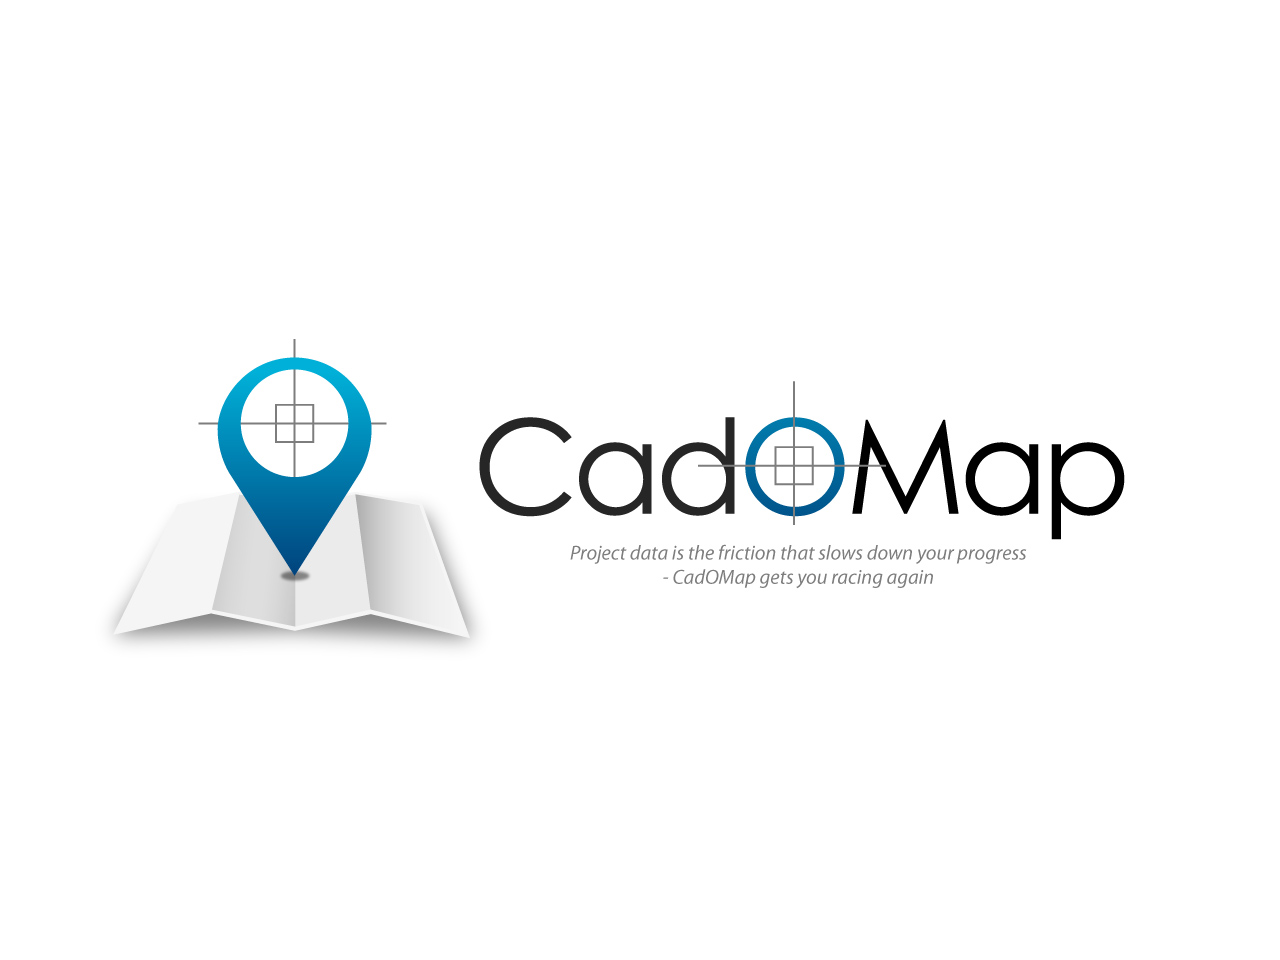 Logo Design by jpbituin - Entry No. 7 in the Logo Design Contest Captivating Logo Design for CadOMap software product.